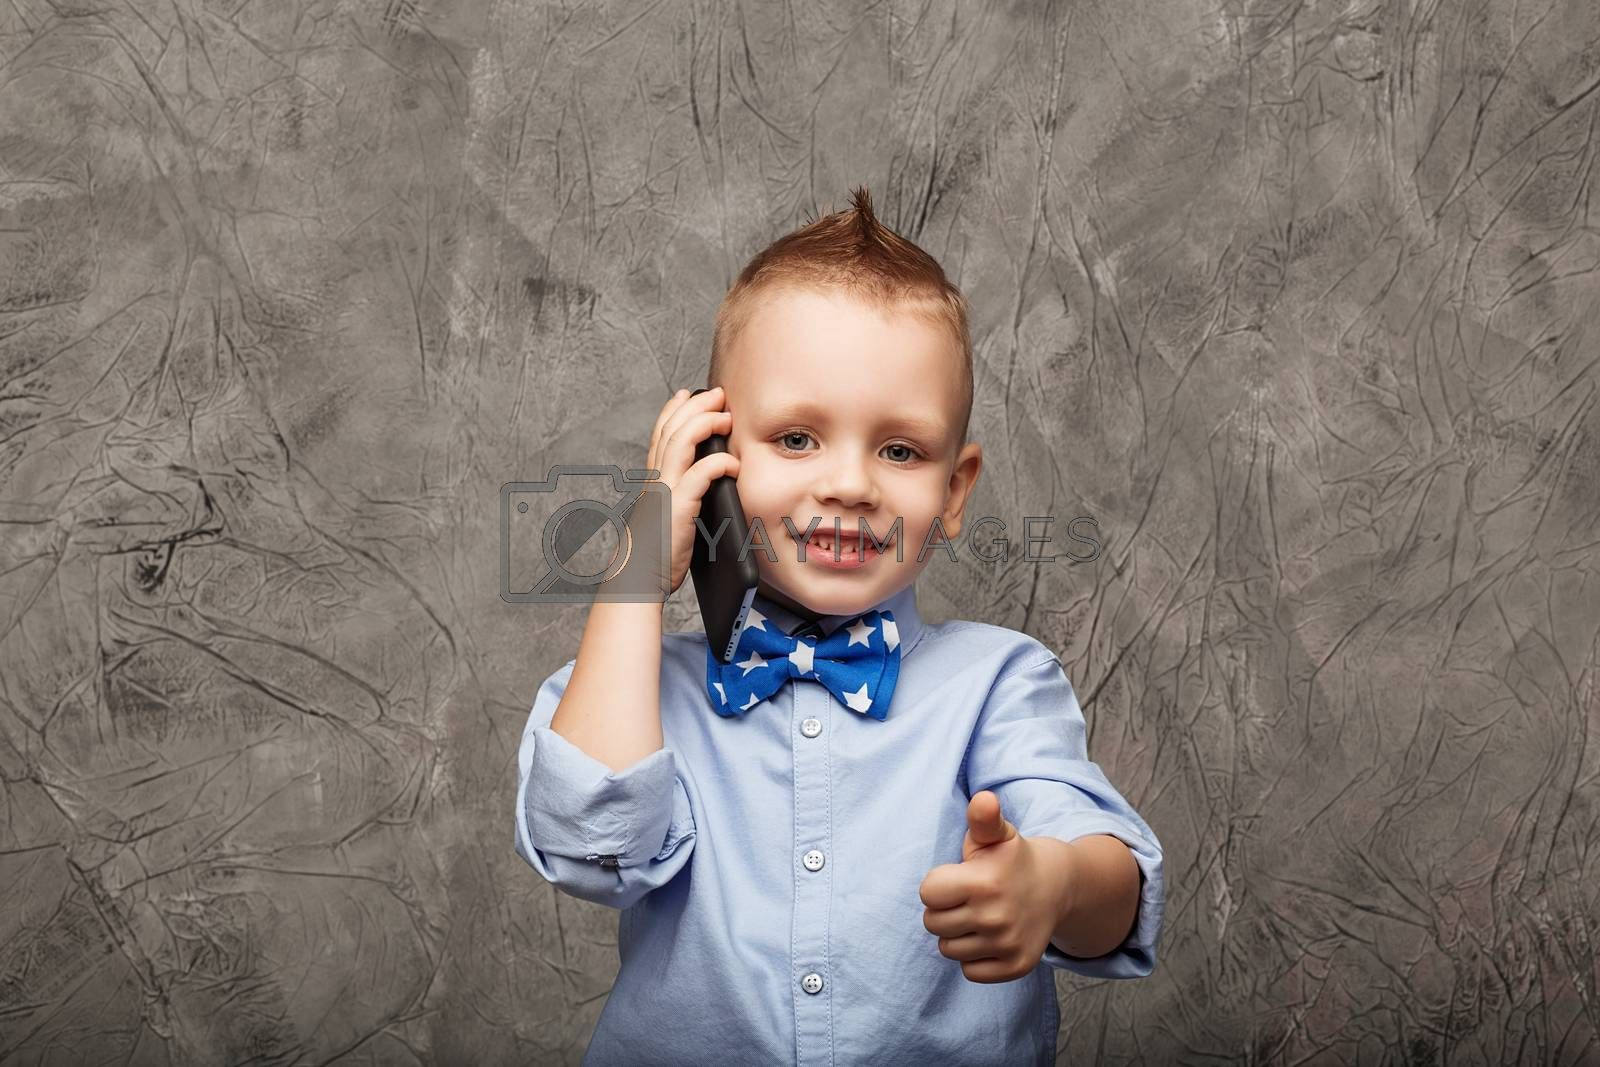 Portrait of a cute little boy in blue shirt and bow tie with mobile phone against gray textural background in studio. Kid shows thumb